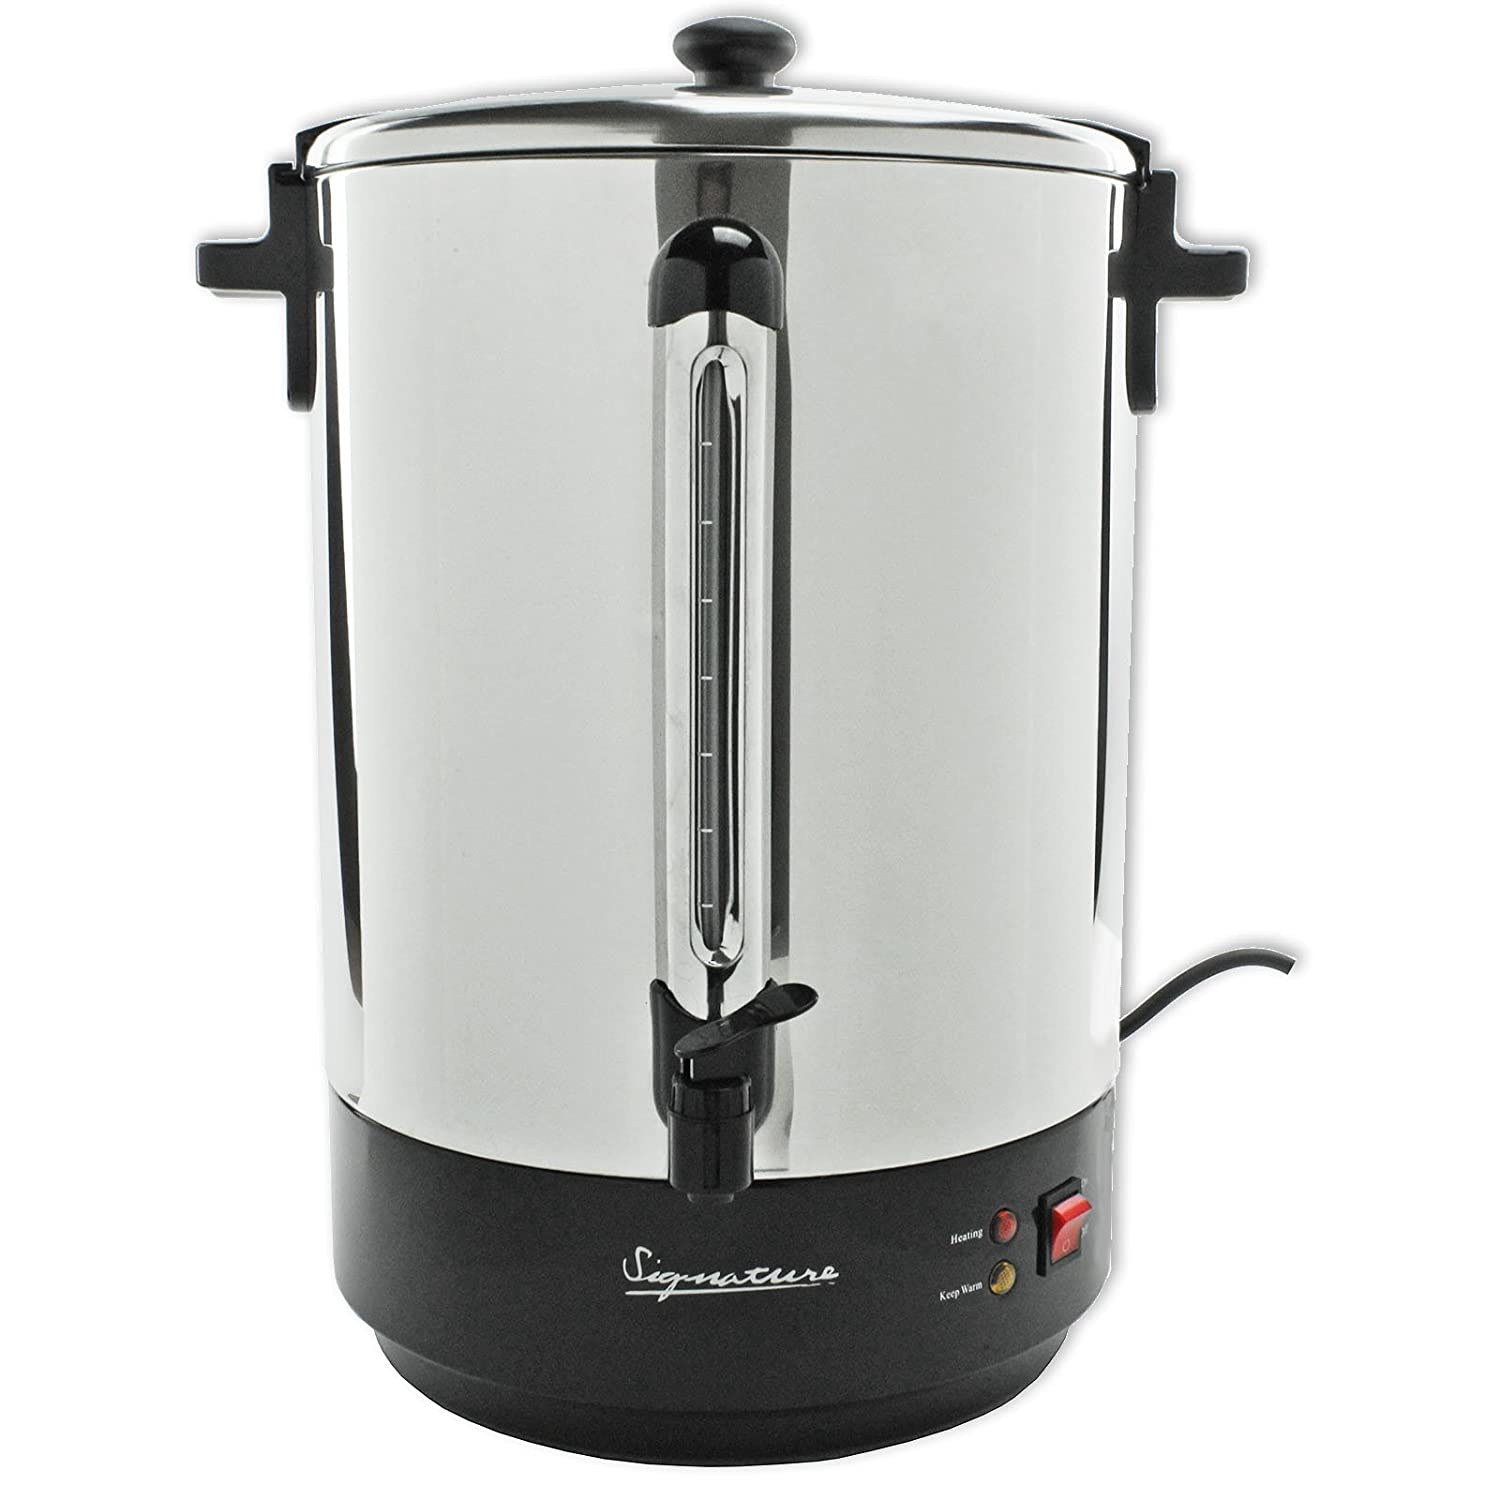 Signature Tea Urn Commercial Electric Catering Hot Water Boiler (2 ...